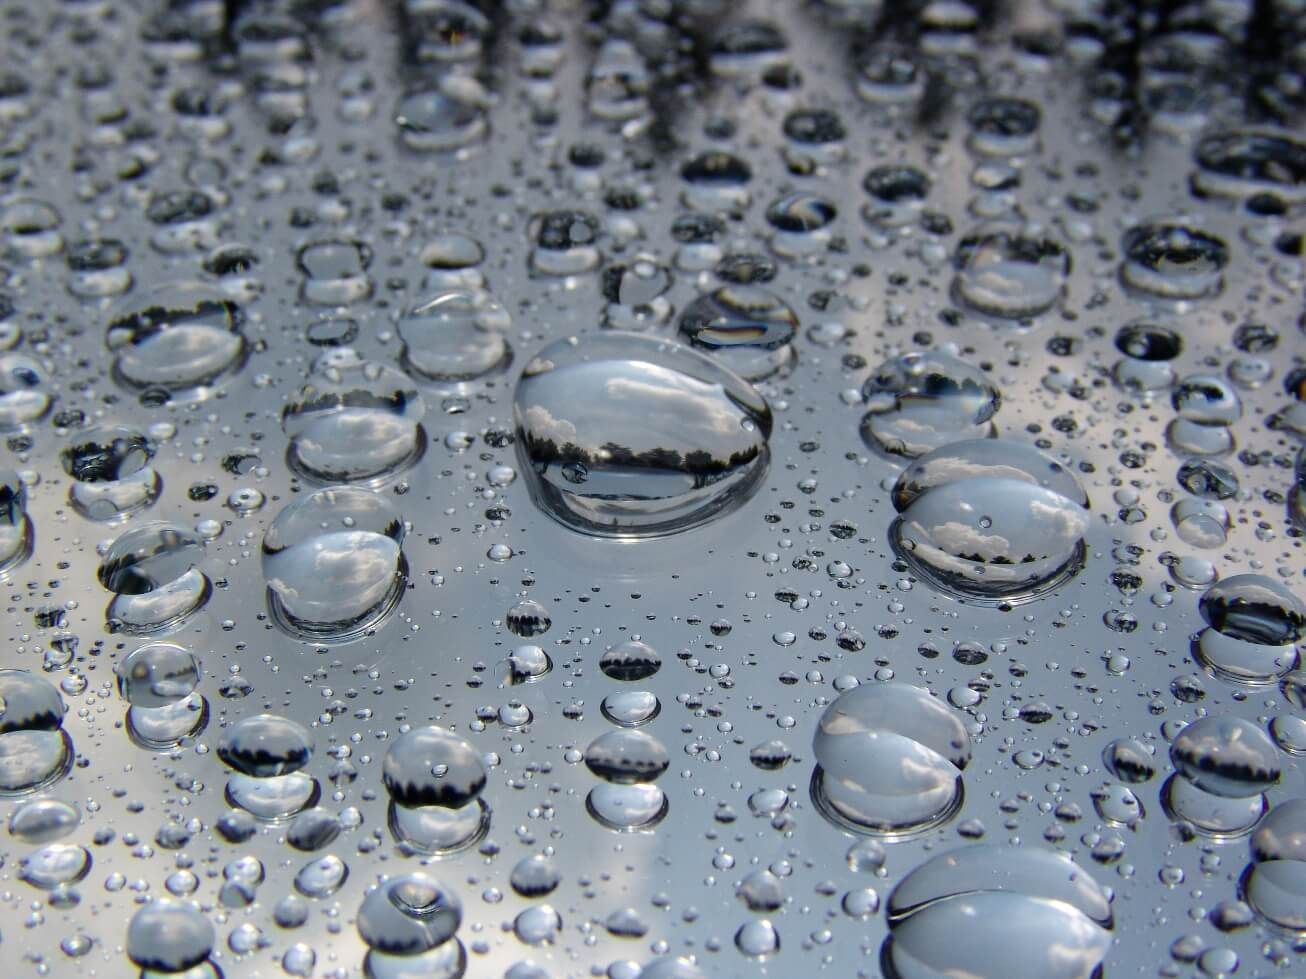 Water droplets beading on window glass after protective coating applied - Presto Restoration Products, LeachStop